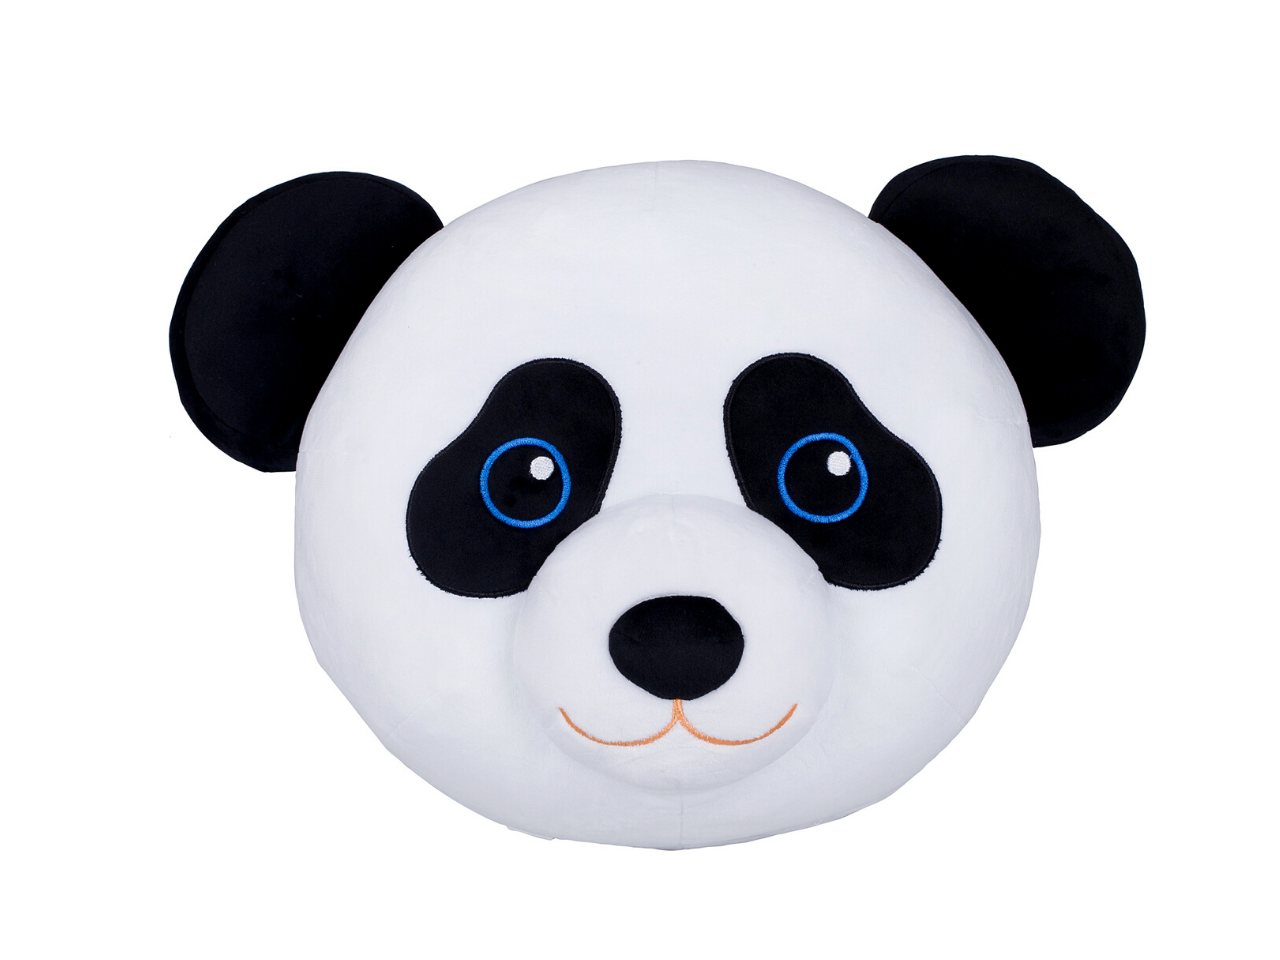 Plush Pillow - Panda